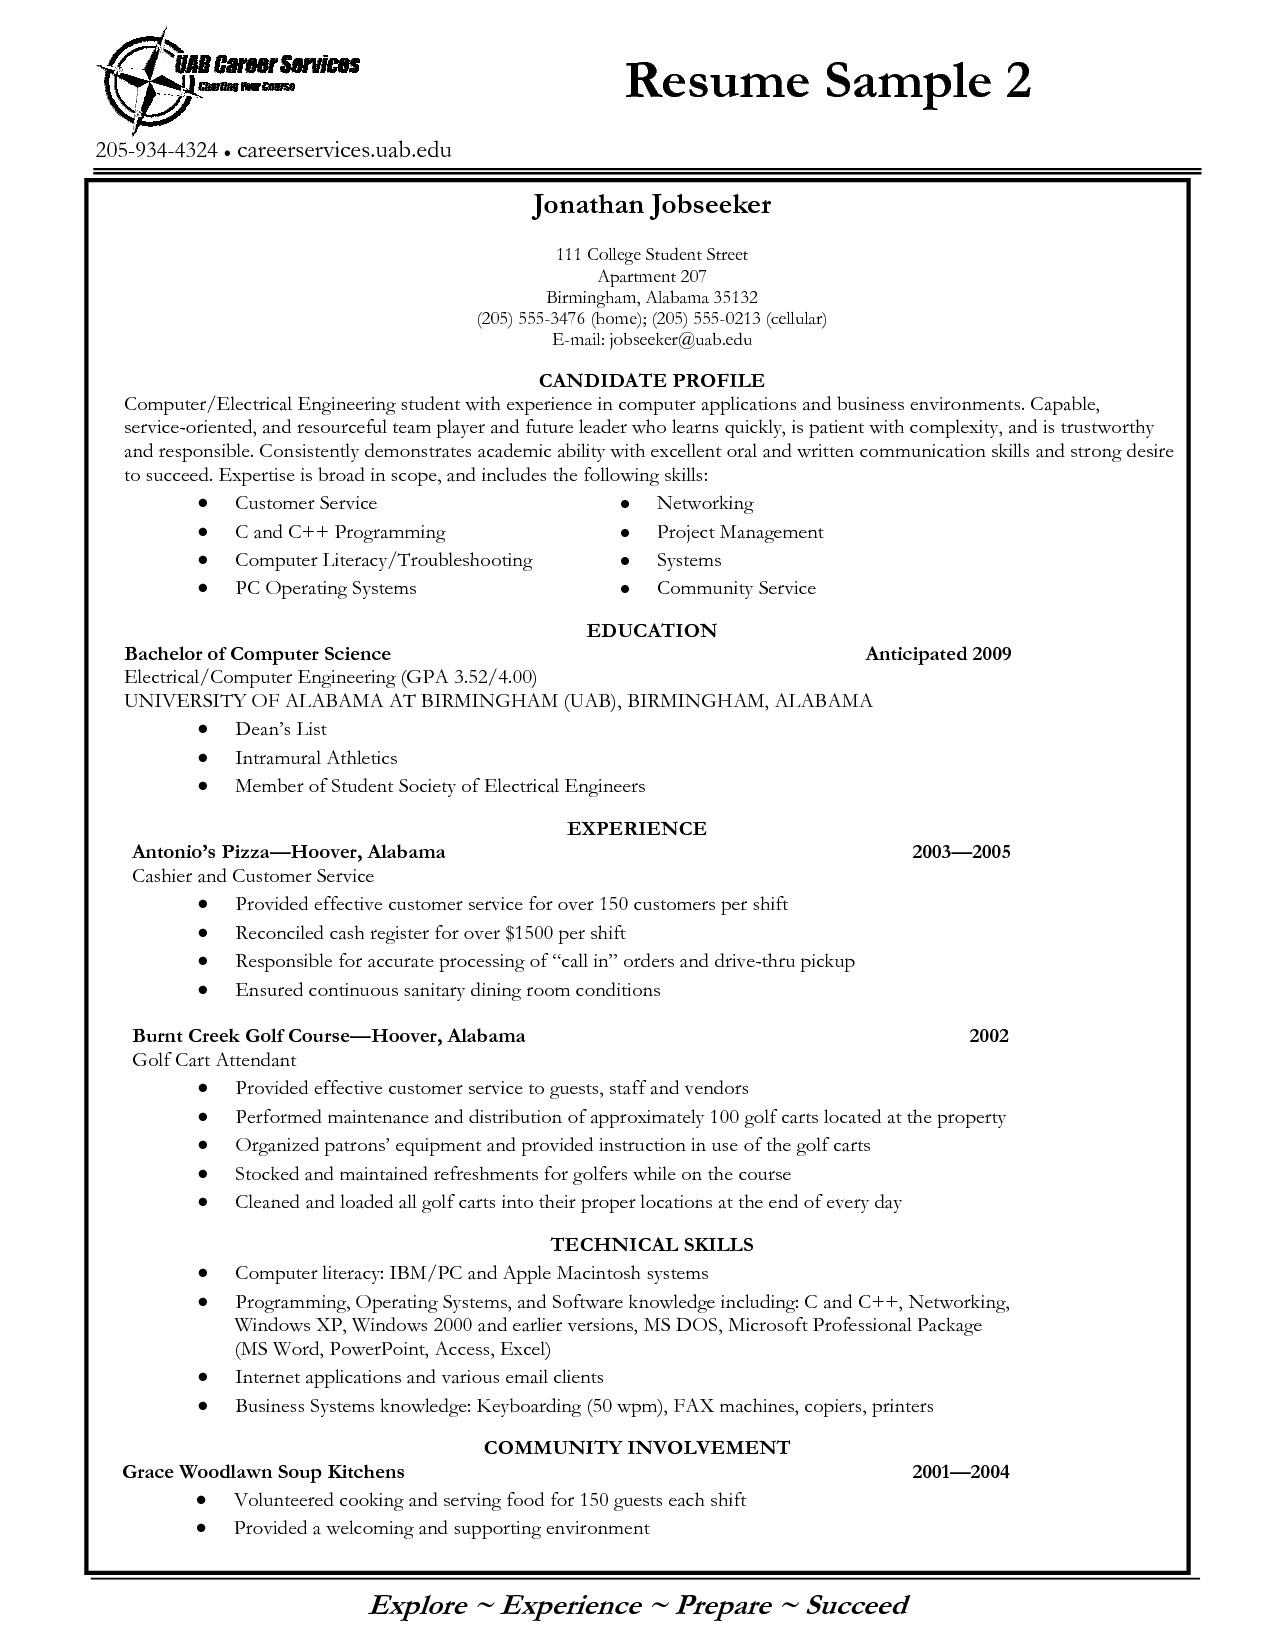 Tags College Graduate Resume No Experience College Graduate Resume .  How To Make A Resume For College